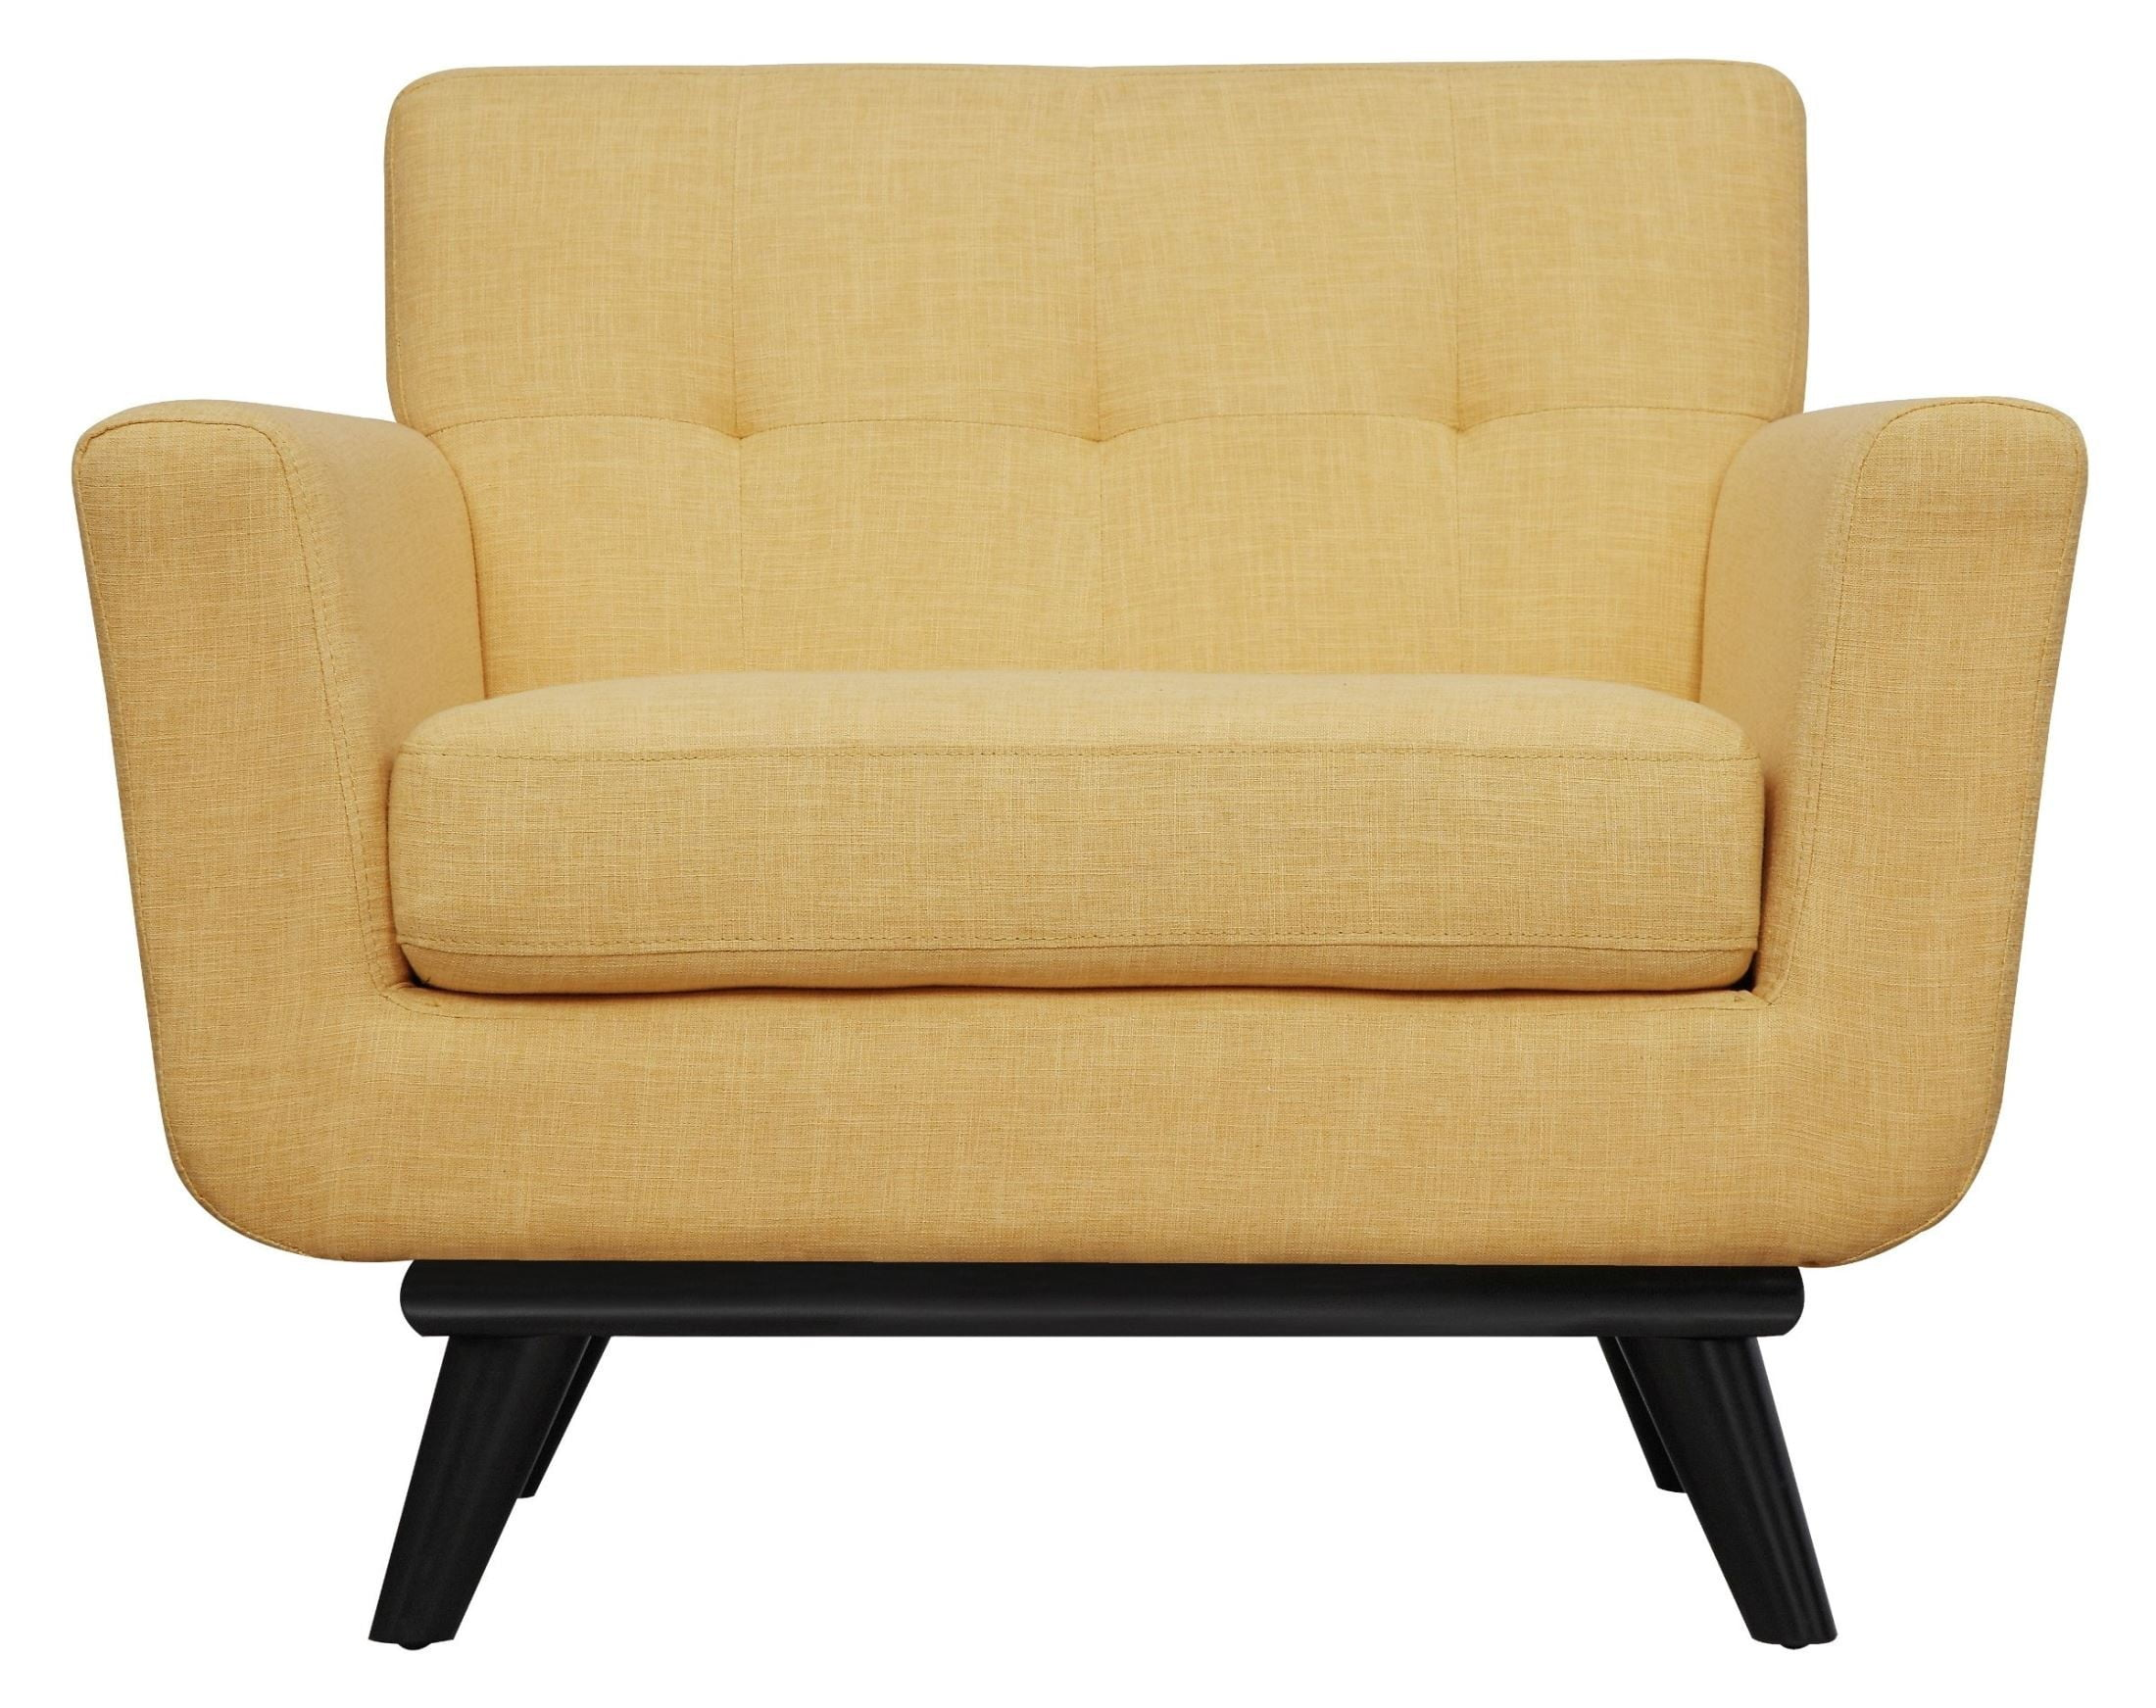 Mustard Accent Chair James Mustard Yellow Linen Chair From Tov A55 Coleman